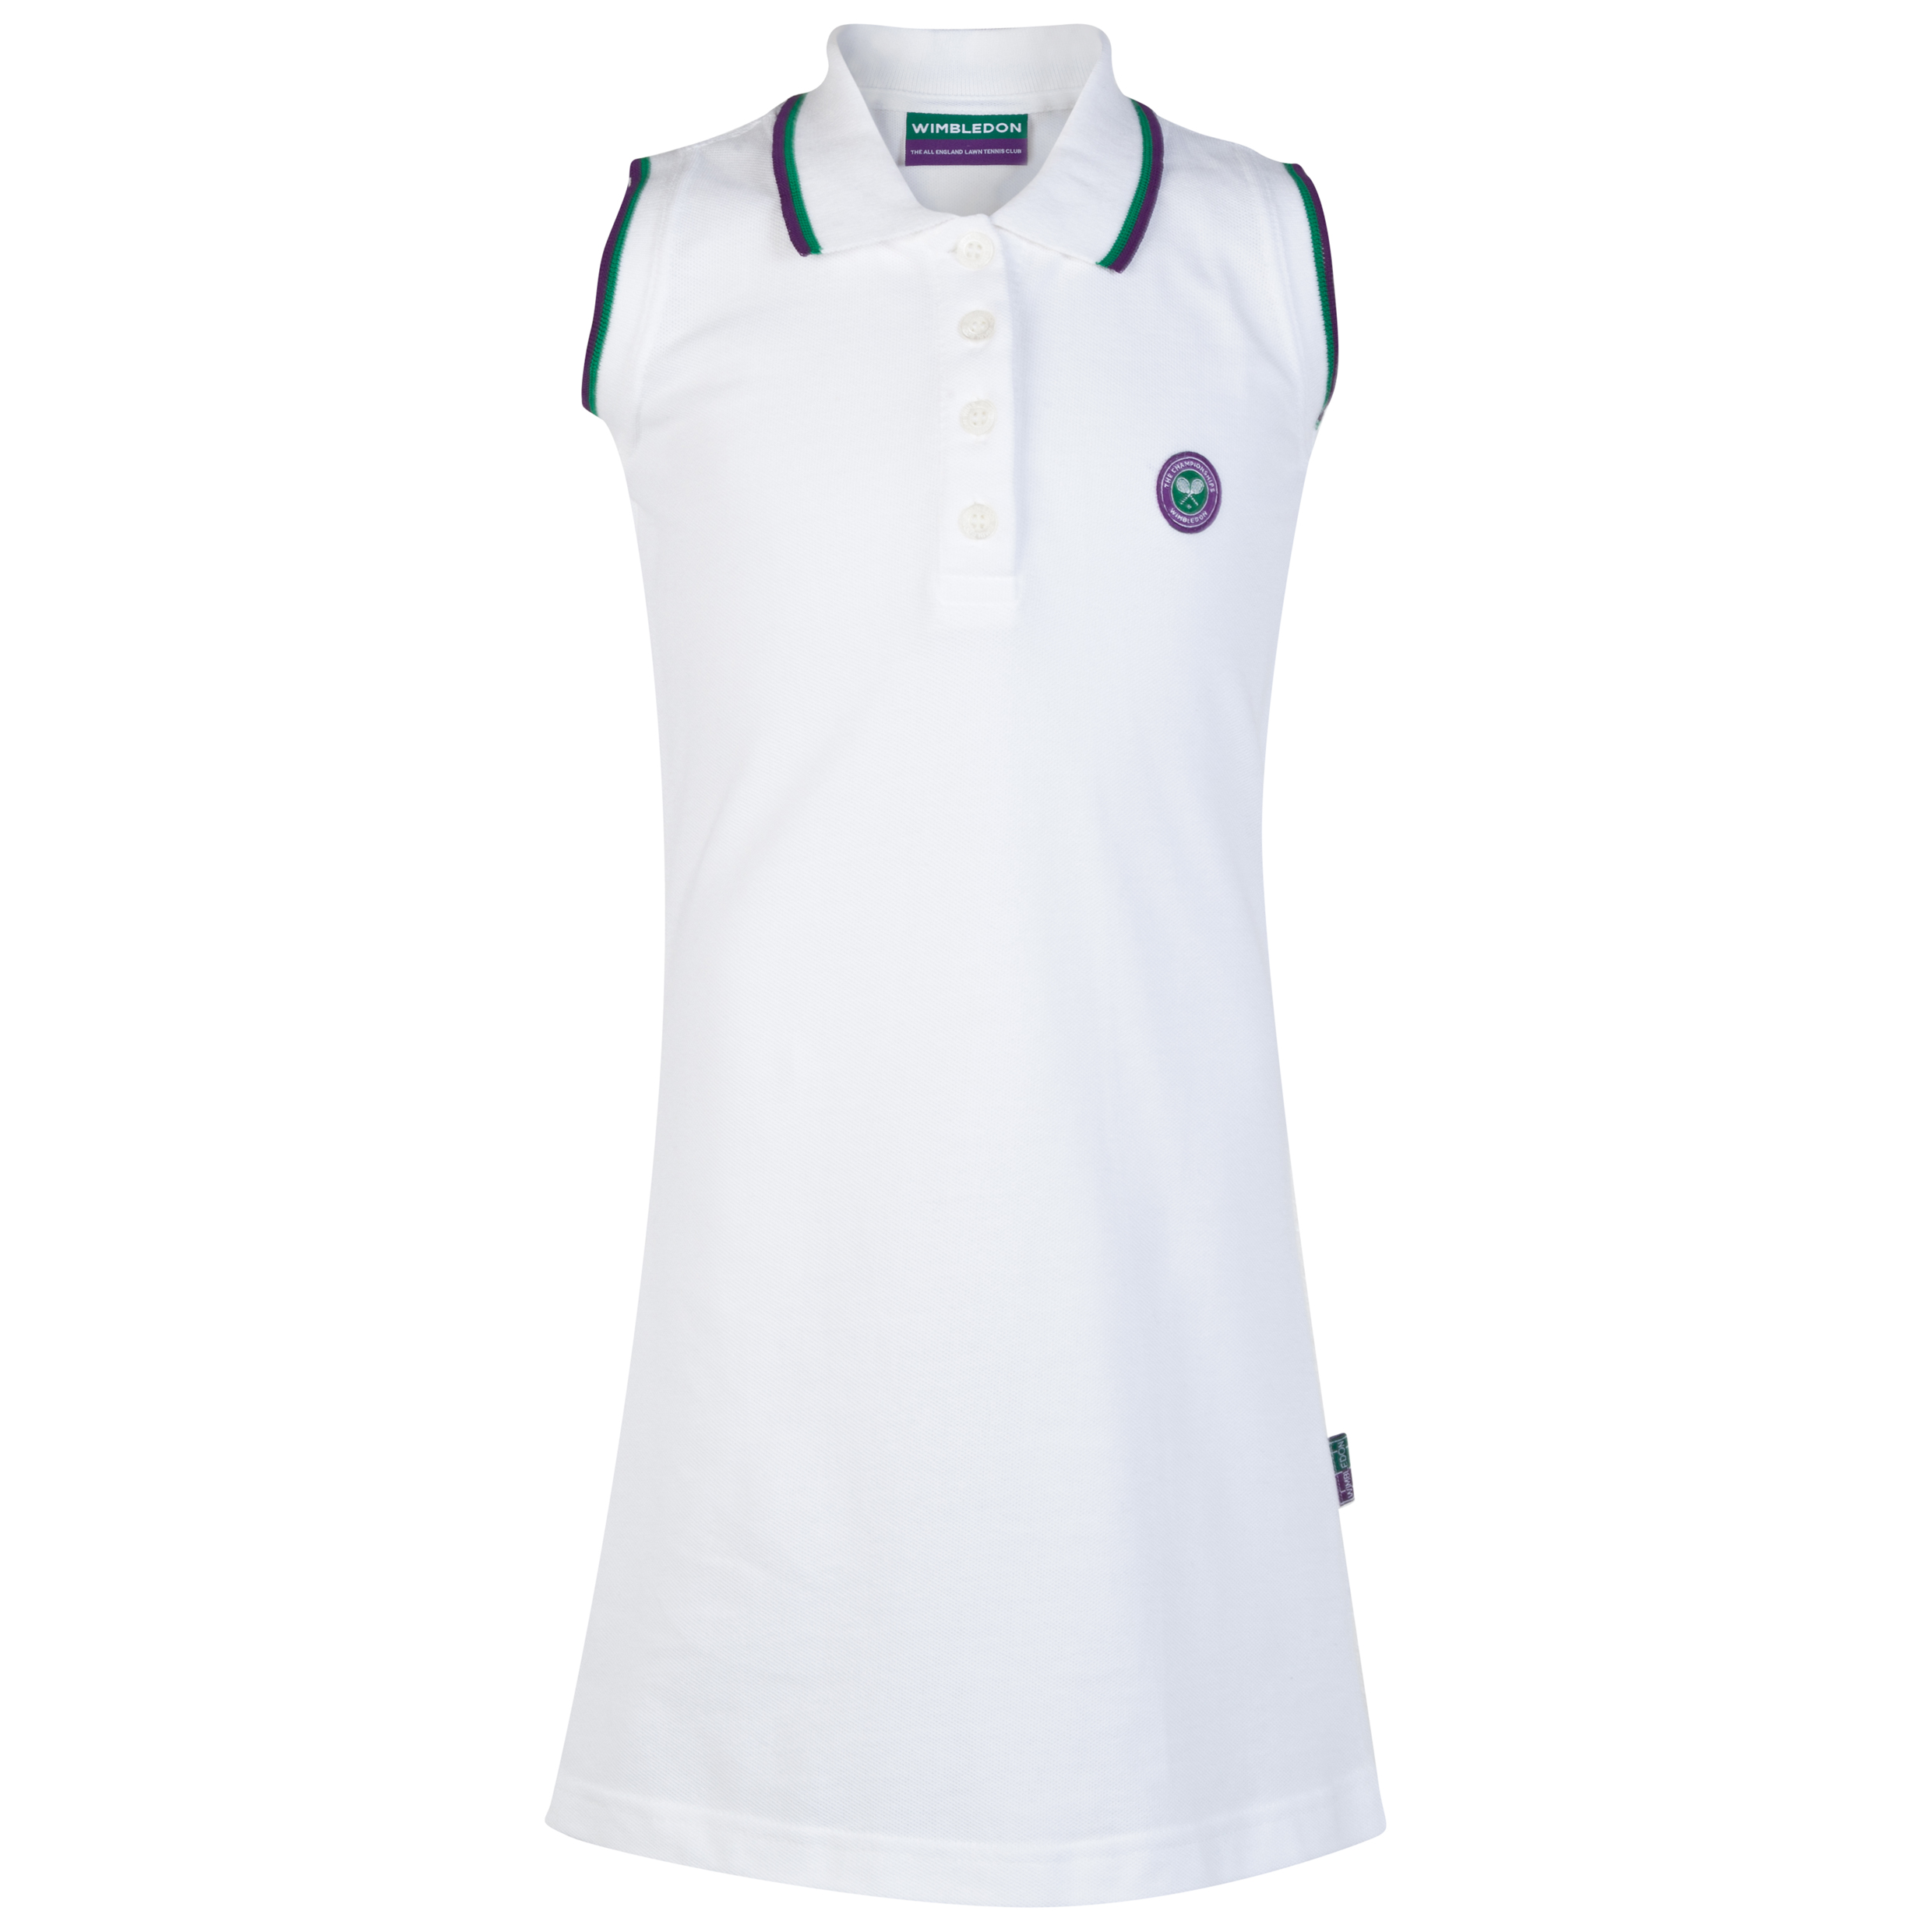 Wimbledon Pique Tennis Dress - White - Girls